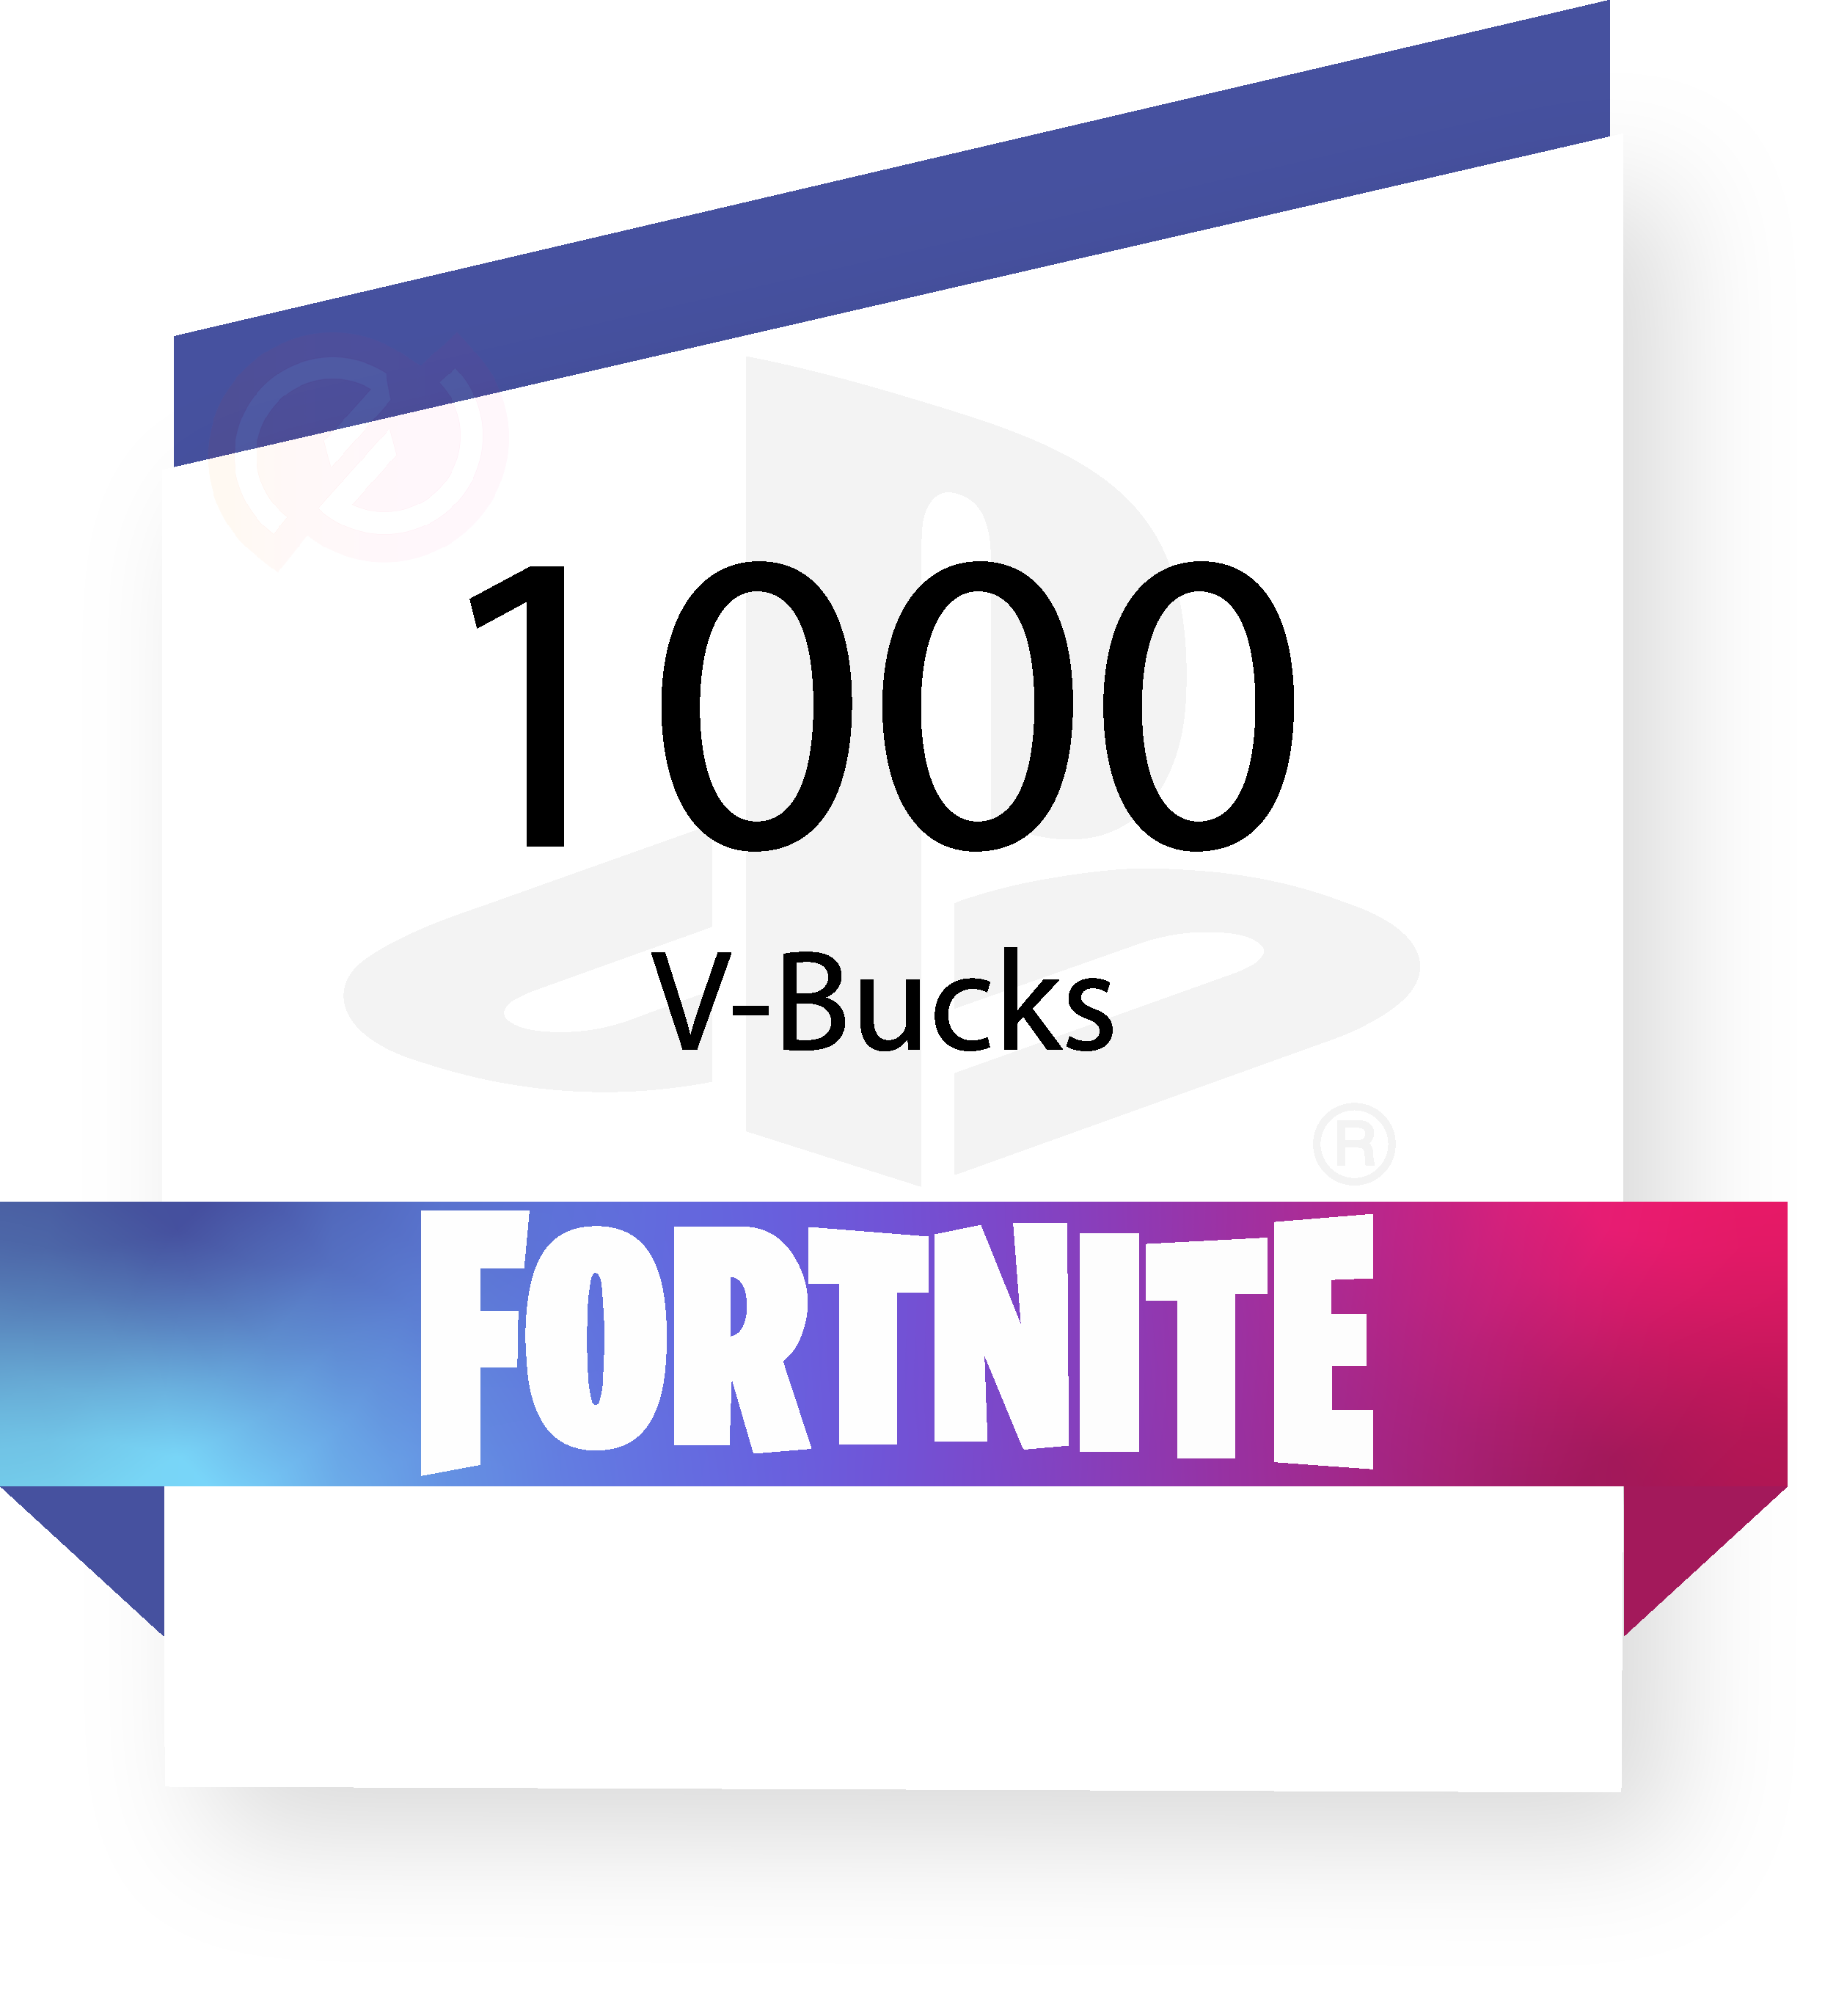 Coupon Fortnite - 1000 V-Bucks - PSN sur internet - Gueez